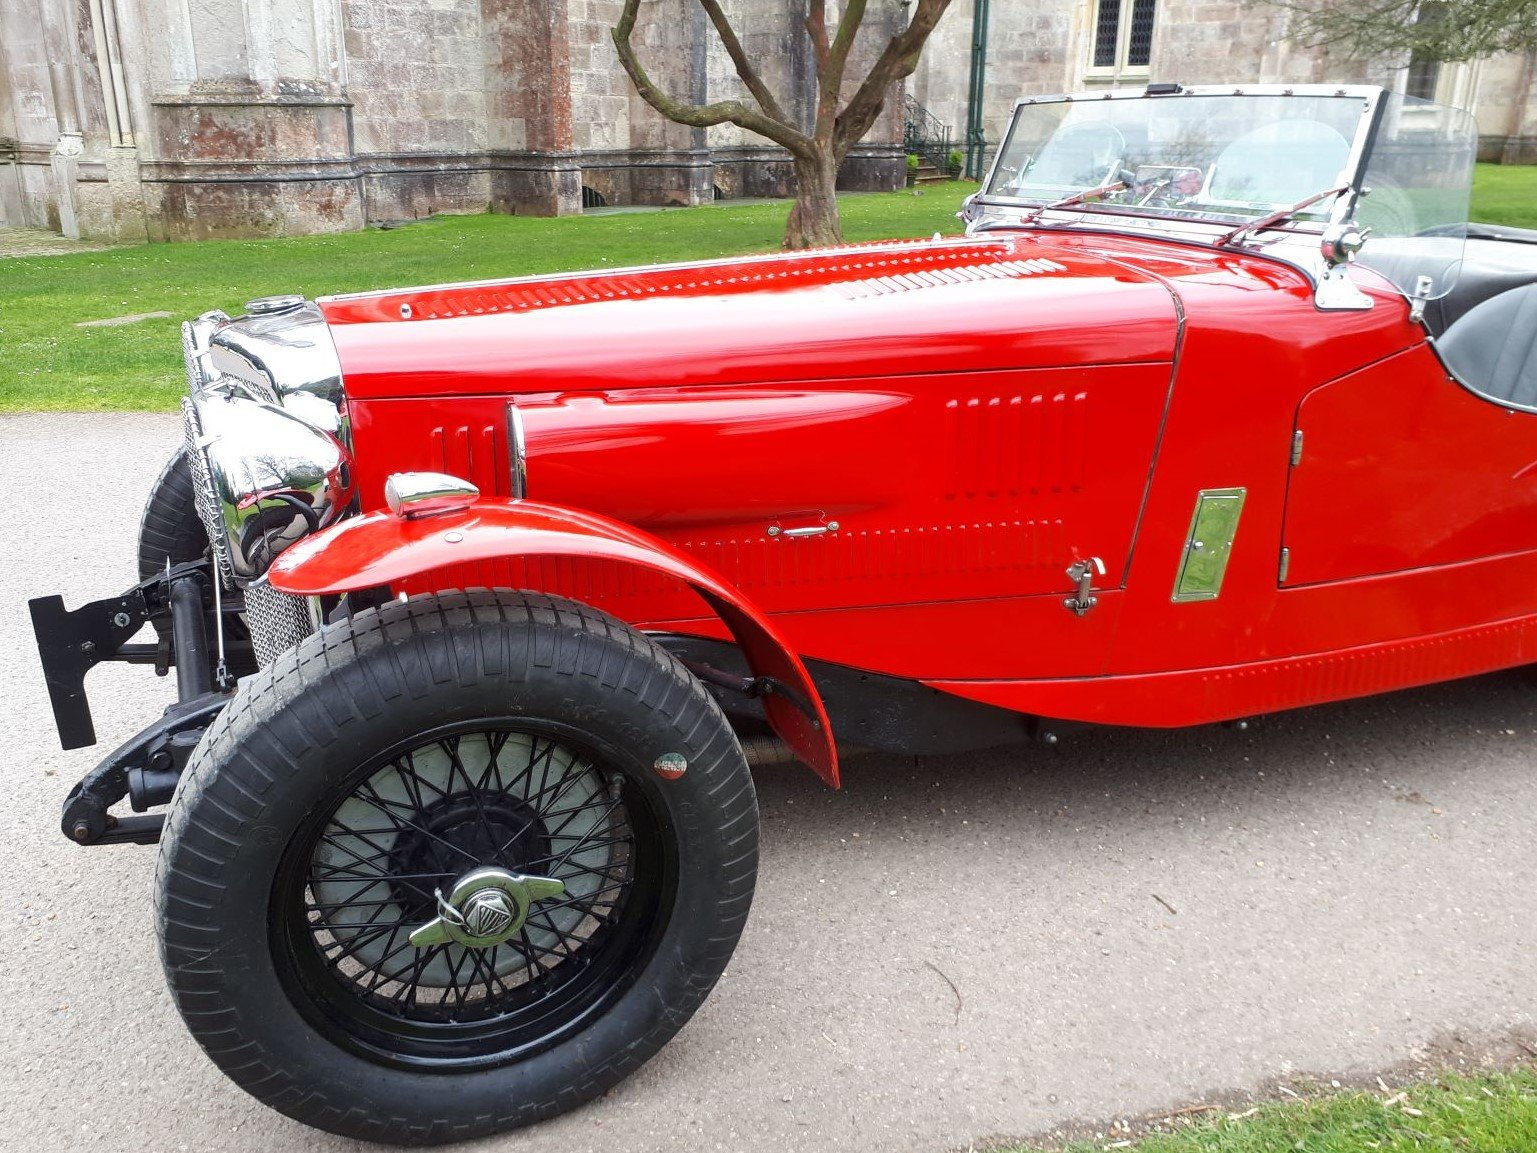 1935 Alvis Speed 25 engine Firebird Special For Sale (picture 1 of 6)